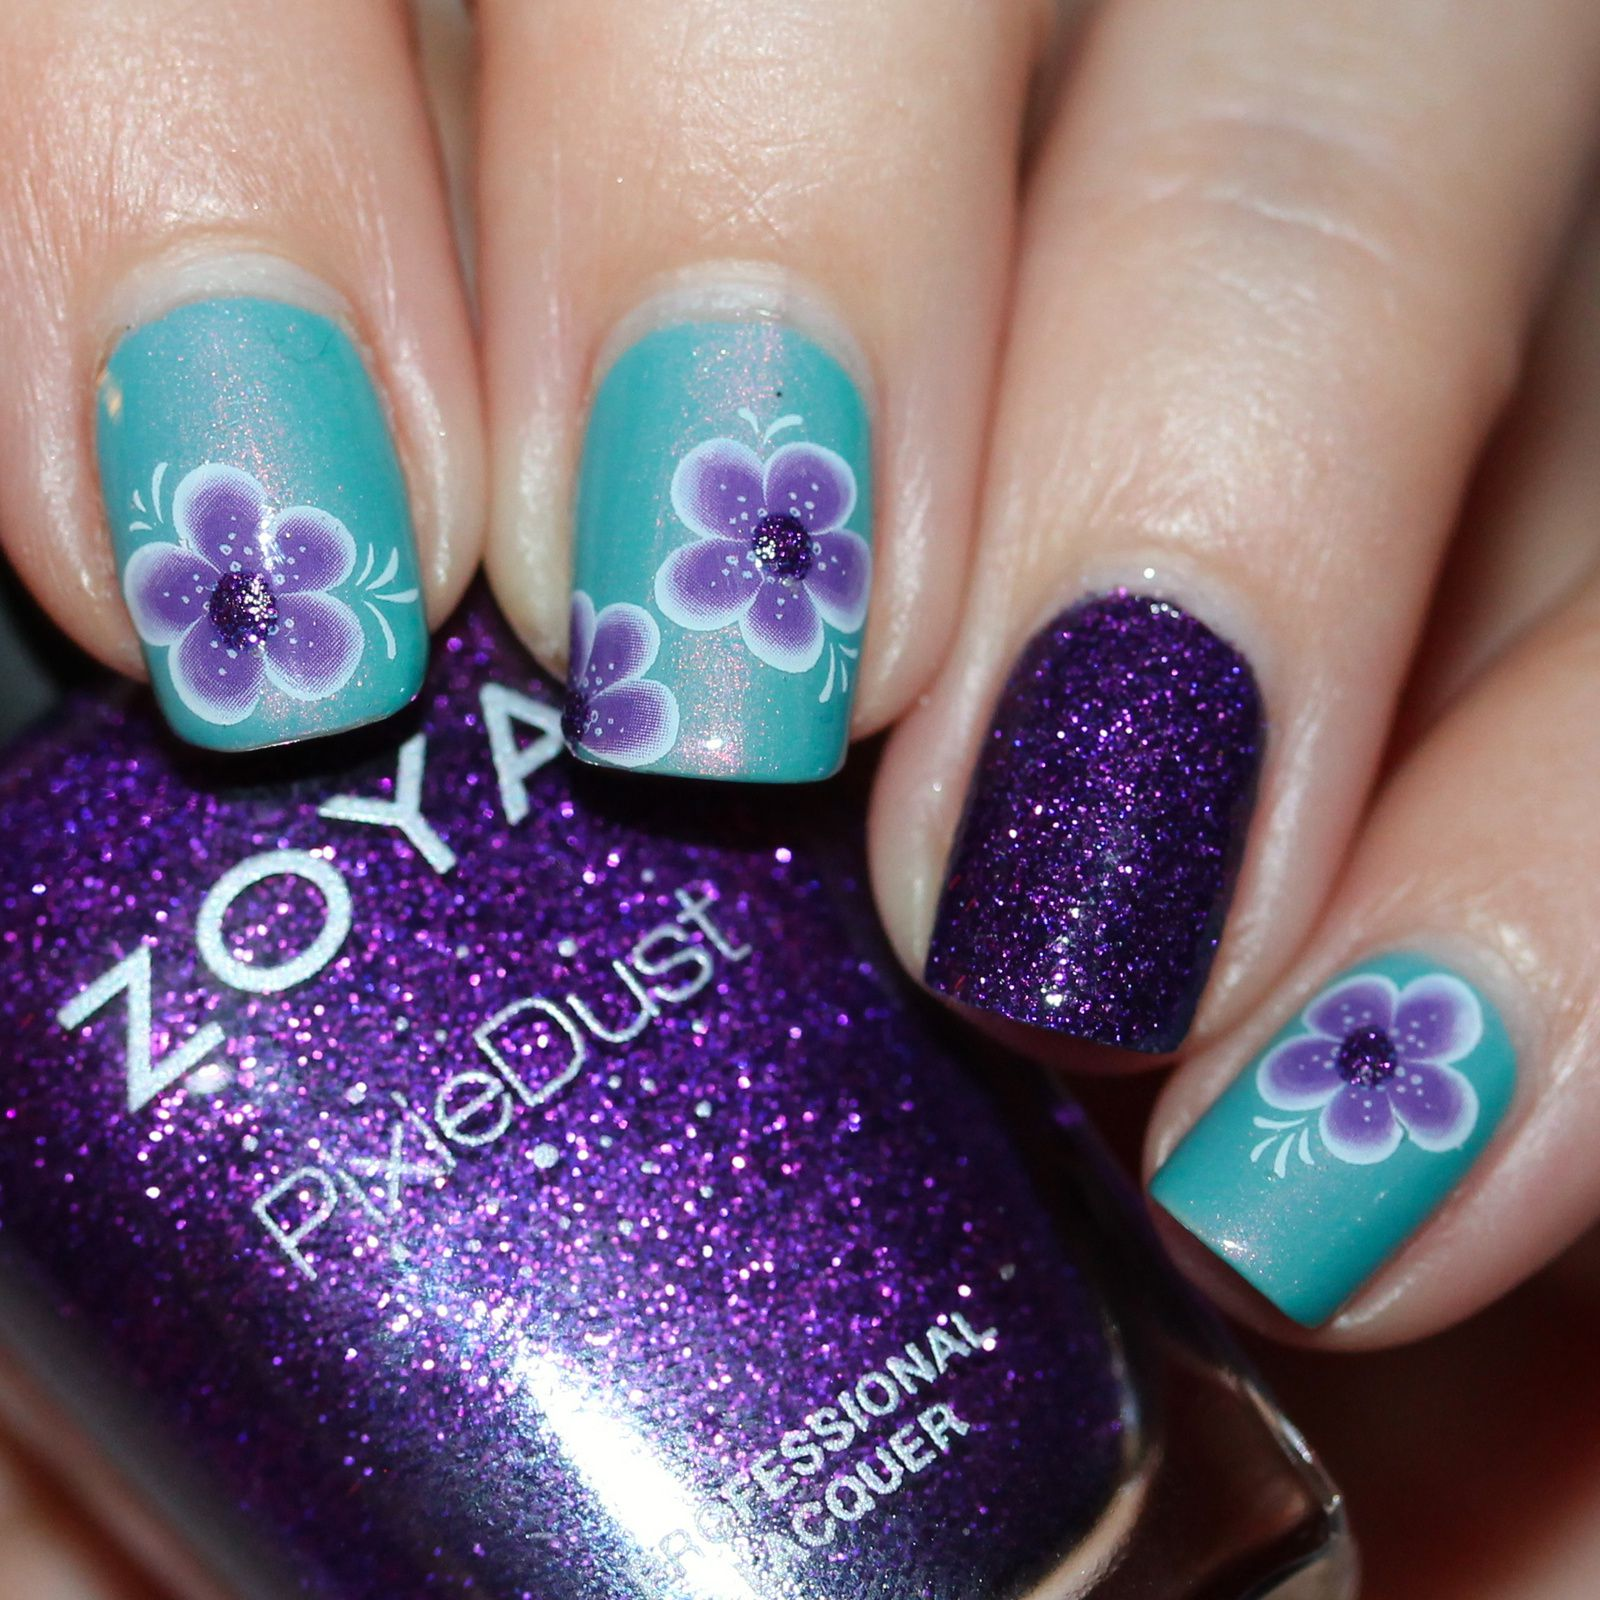 Sally Hansen Complete Care 4-in-1 Extra Moisturizing Nail Treatment / Enchanted Polish July 2016 / Water décal collection Tartofraises Y140C / Zoya Carter (accent nail) / Poshe Top Coat